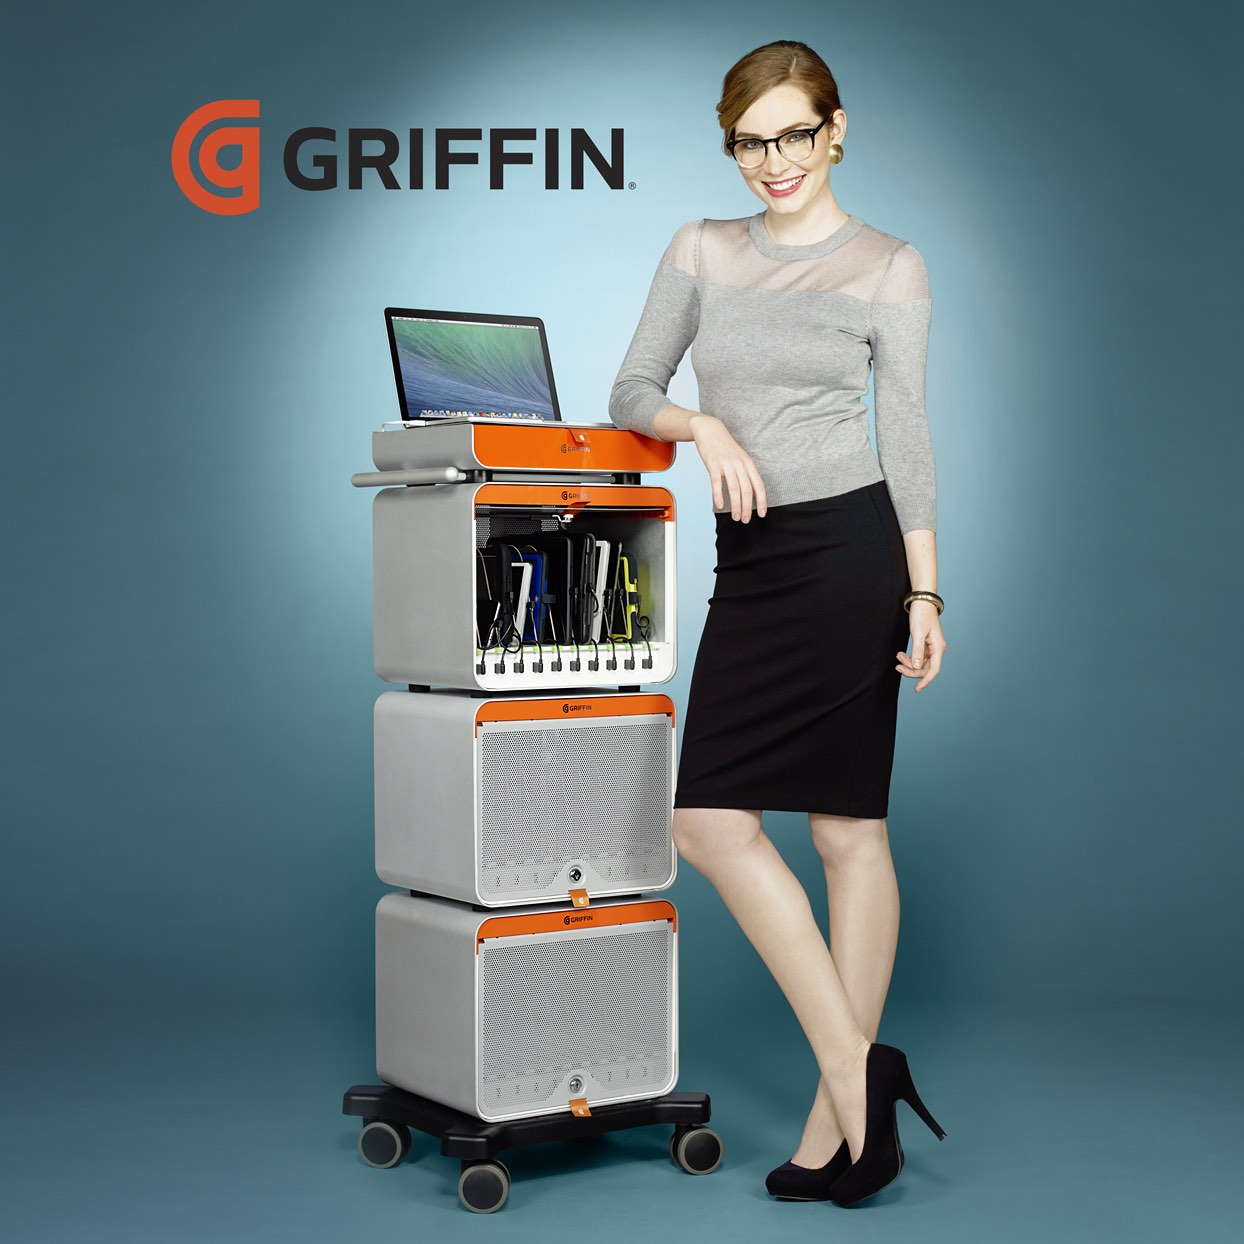 Mark DeLong - Commercial Photography - Business Woman next a Griffin desk.